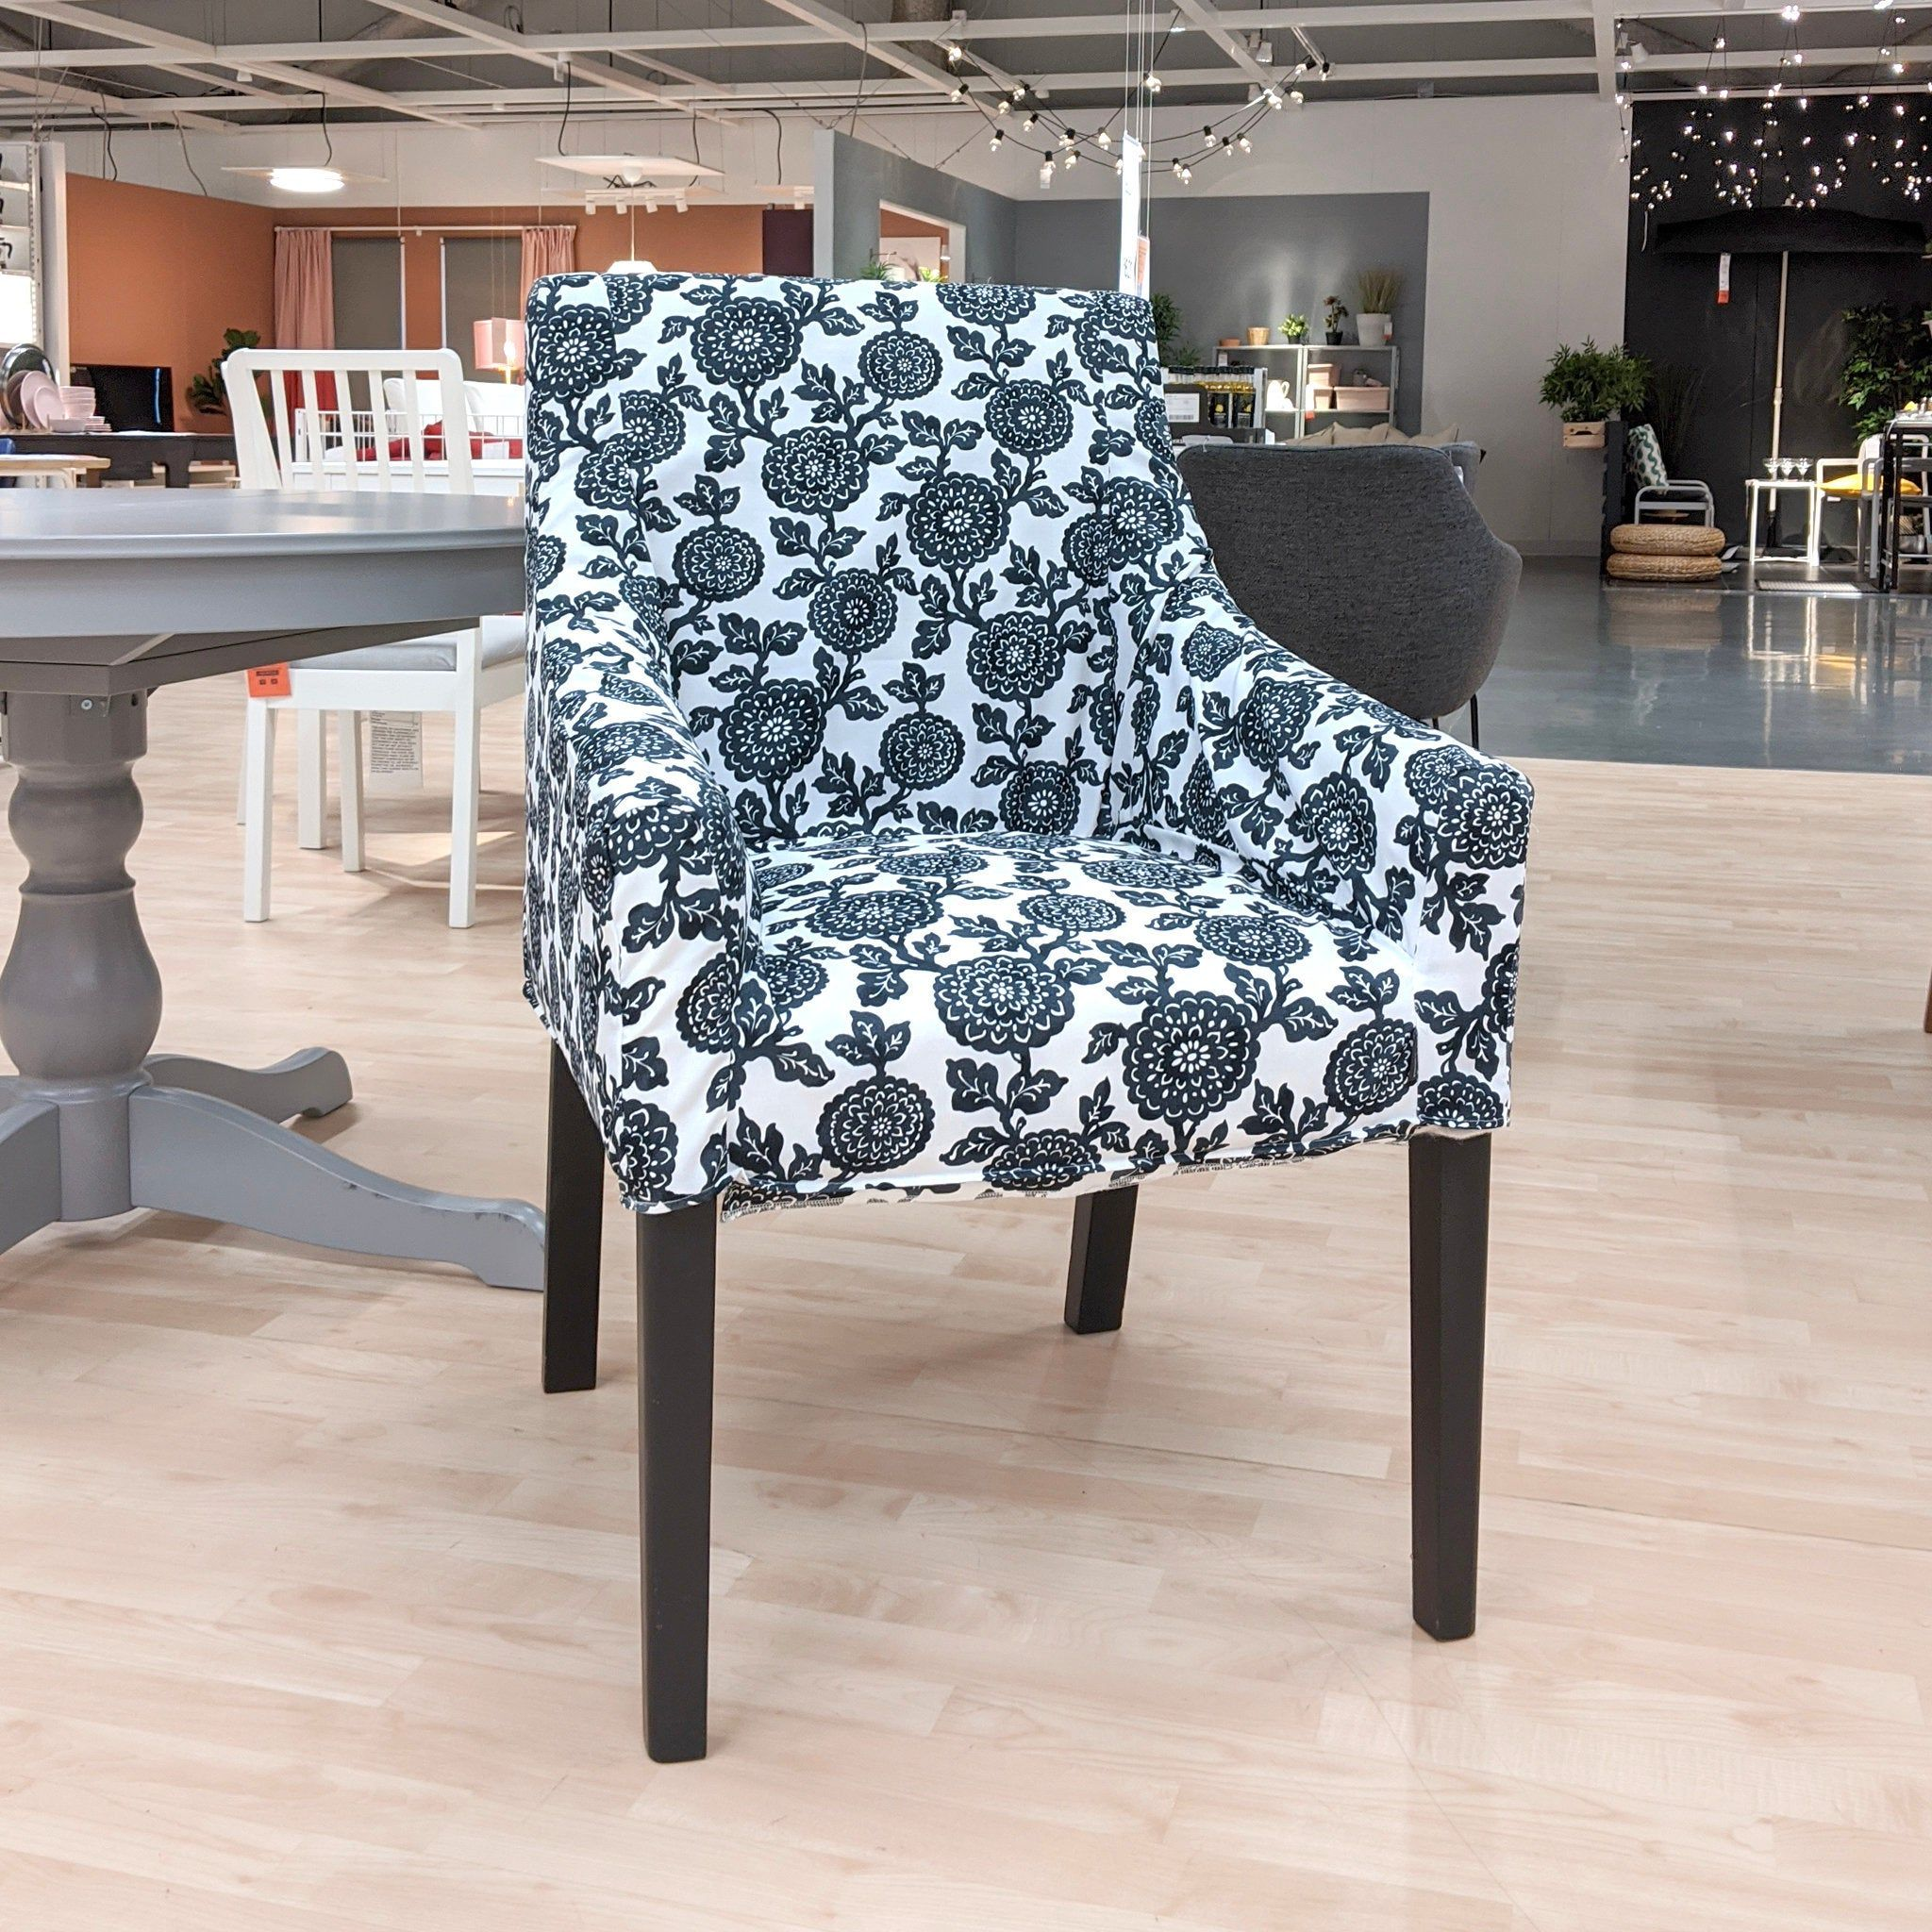 IKEA SAKARIAS Chair Slip Cover, Black Floral in 2020